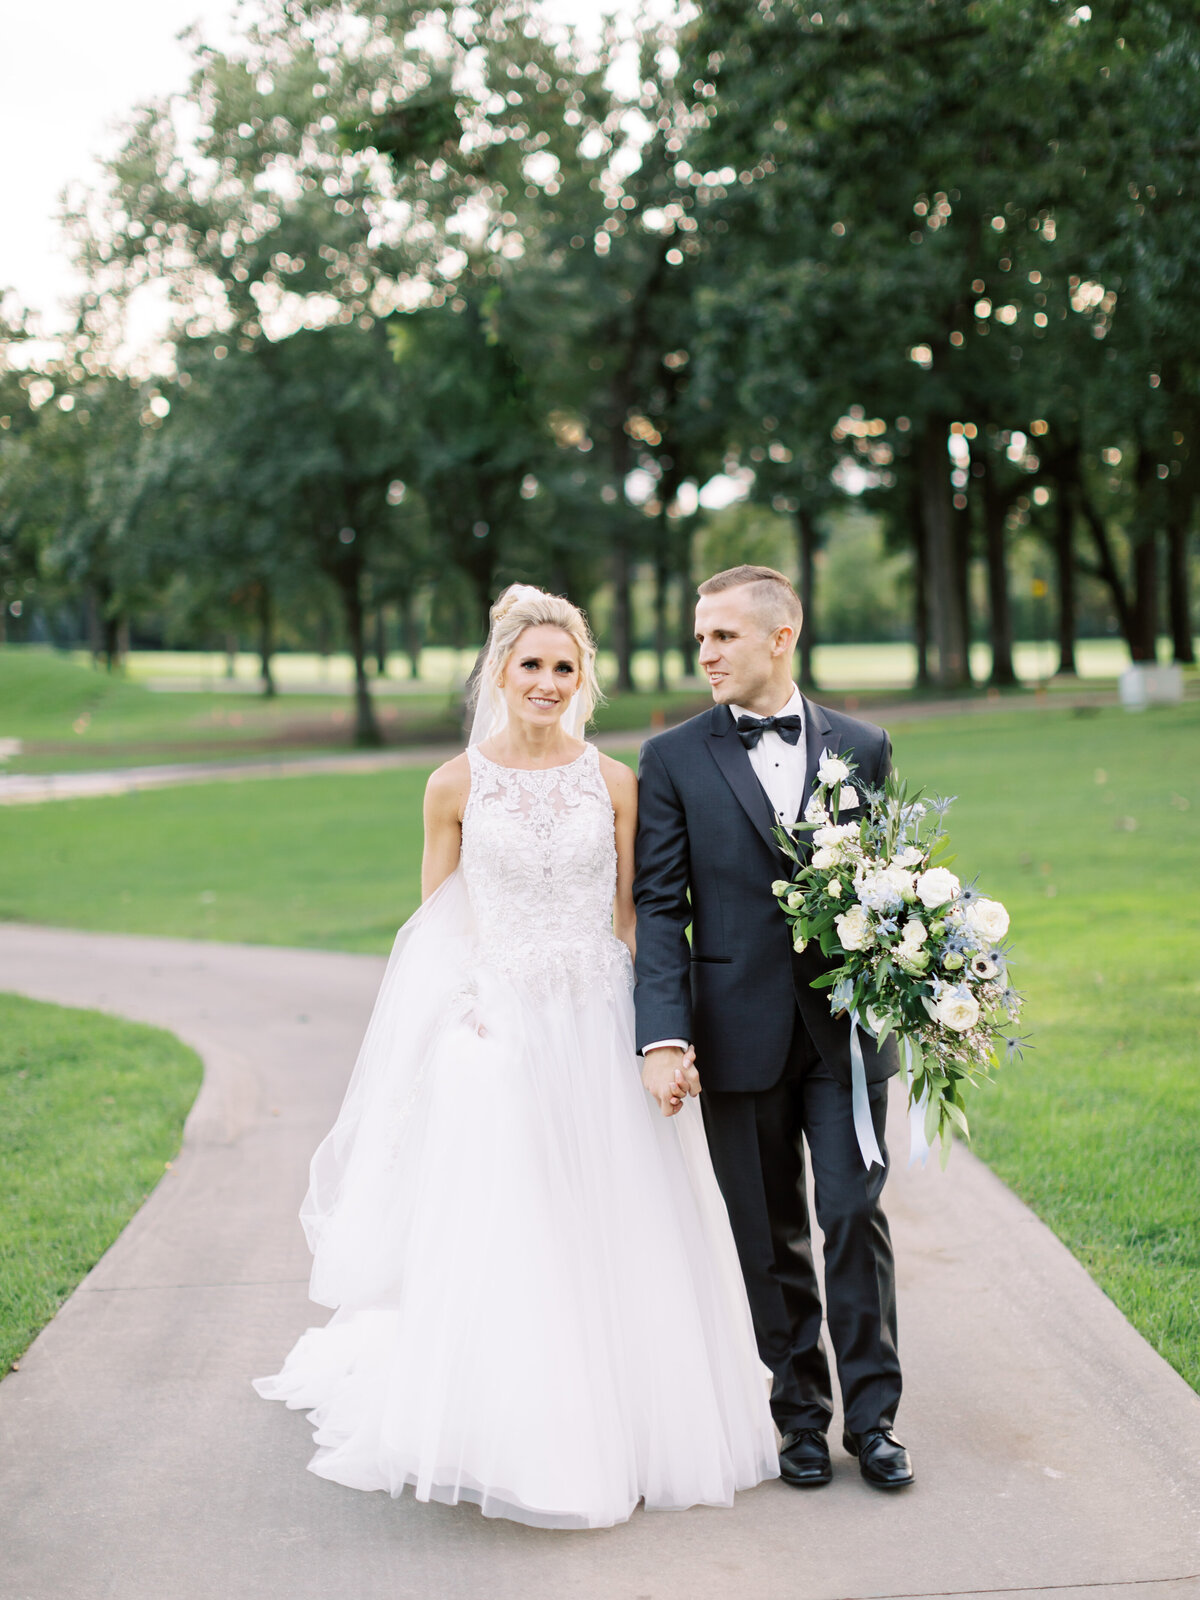 TiffaneyChildsPhotography-ChicagoWeddingPhotographer-Caitlin+Devin-MedinahCountryClubWedding-BridalPortraits-69